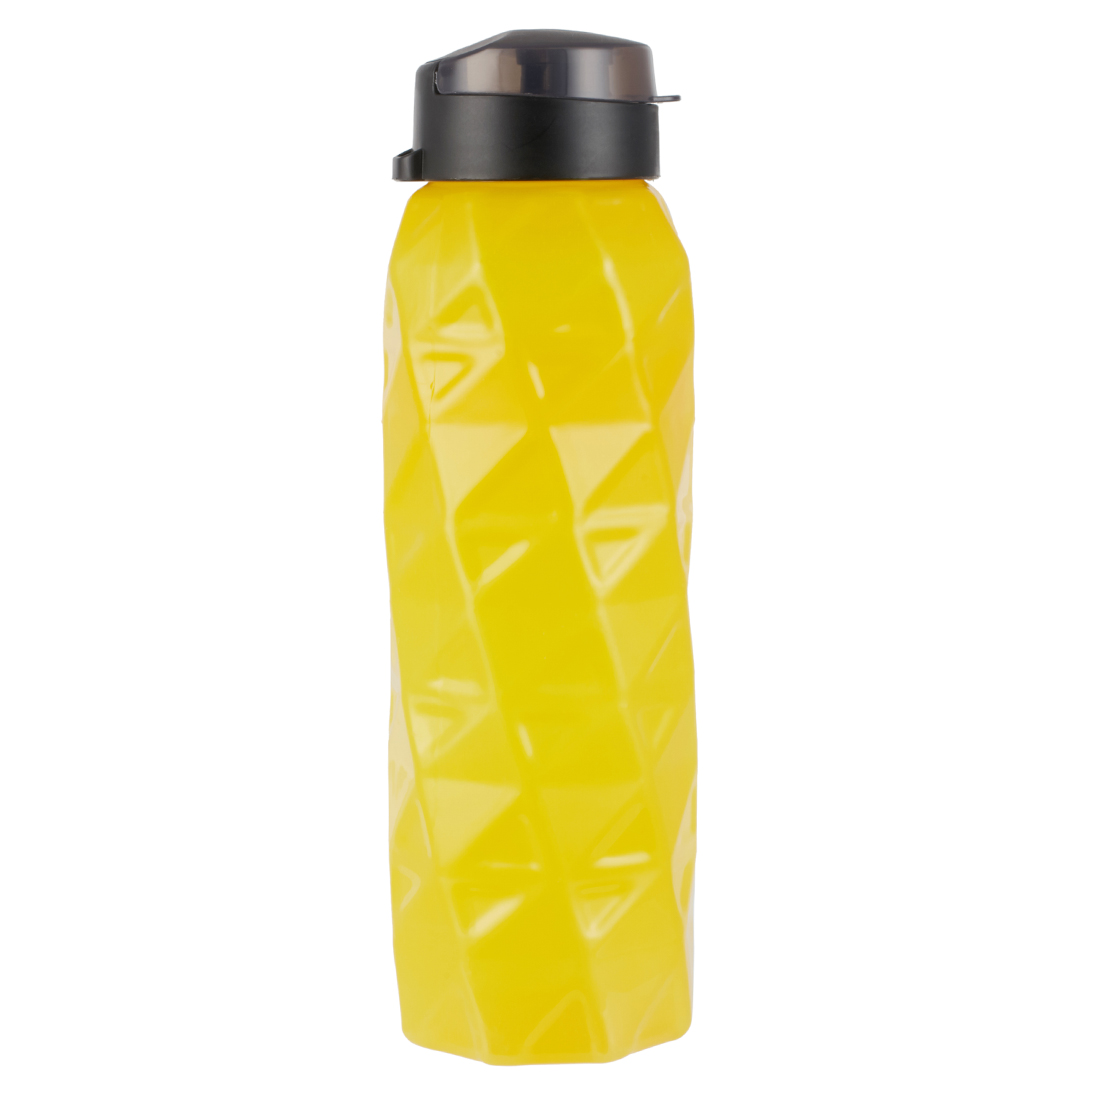 Shades Plastic Bottles in Yellow Colour by Living Essence